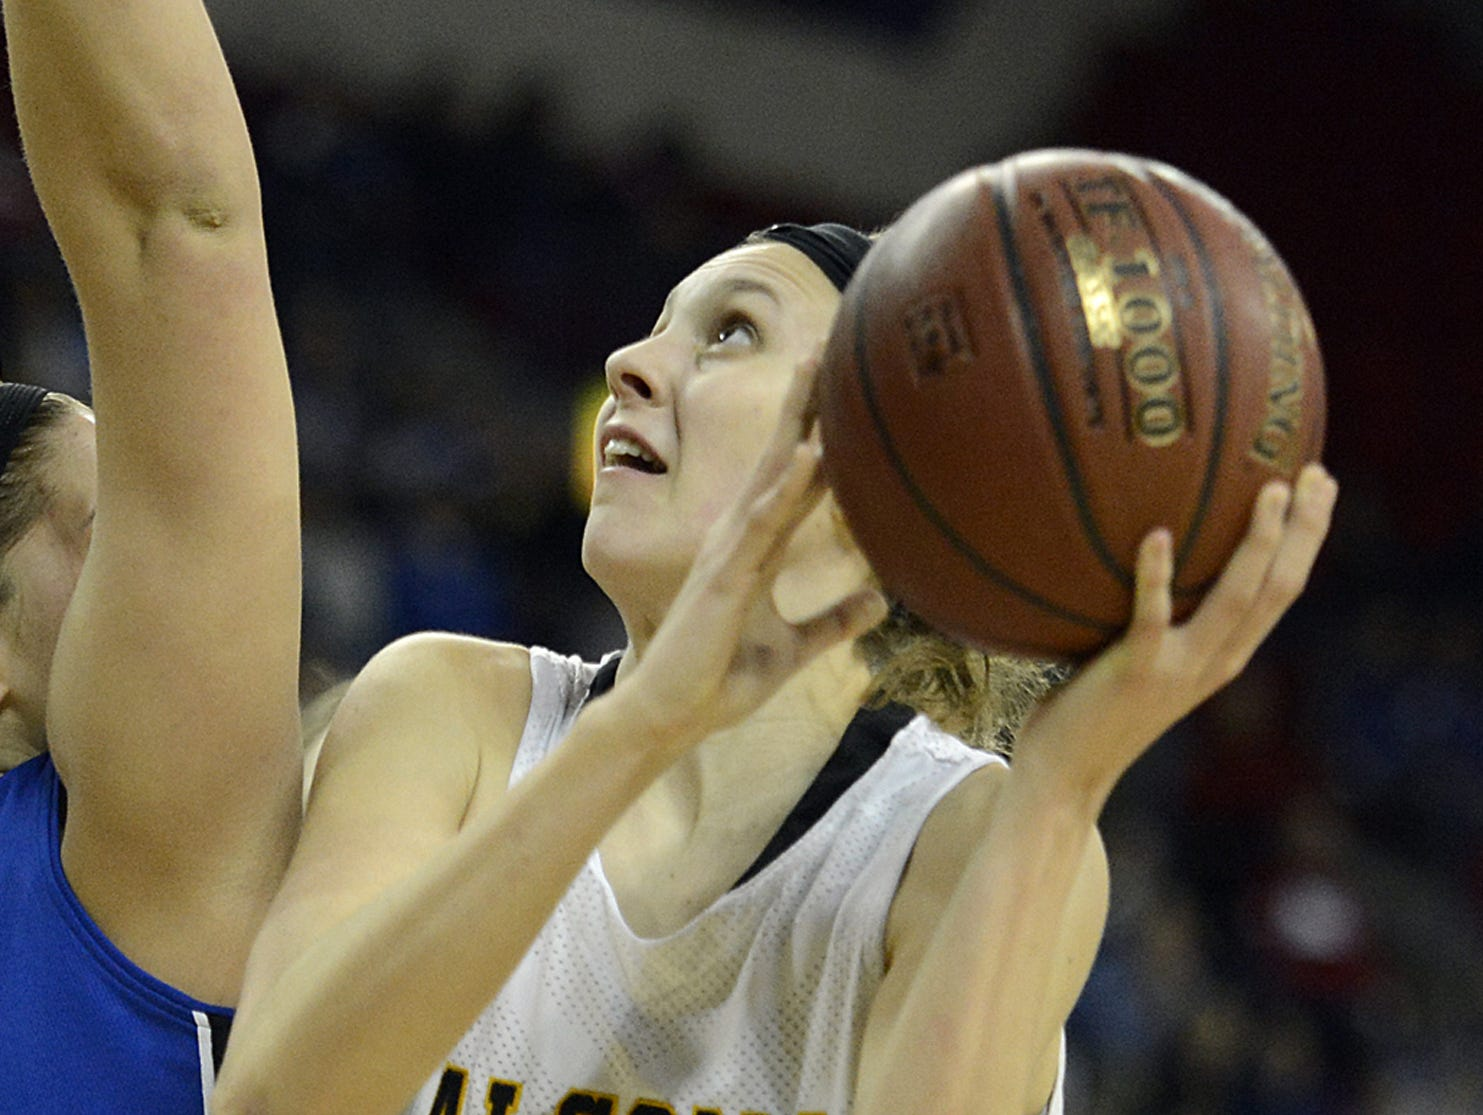 Algoma's Anna Dier is averaging 25.7 points through three games after returning from a torn anterior cruciate ligament sustained last season.